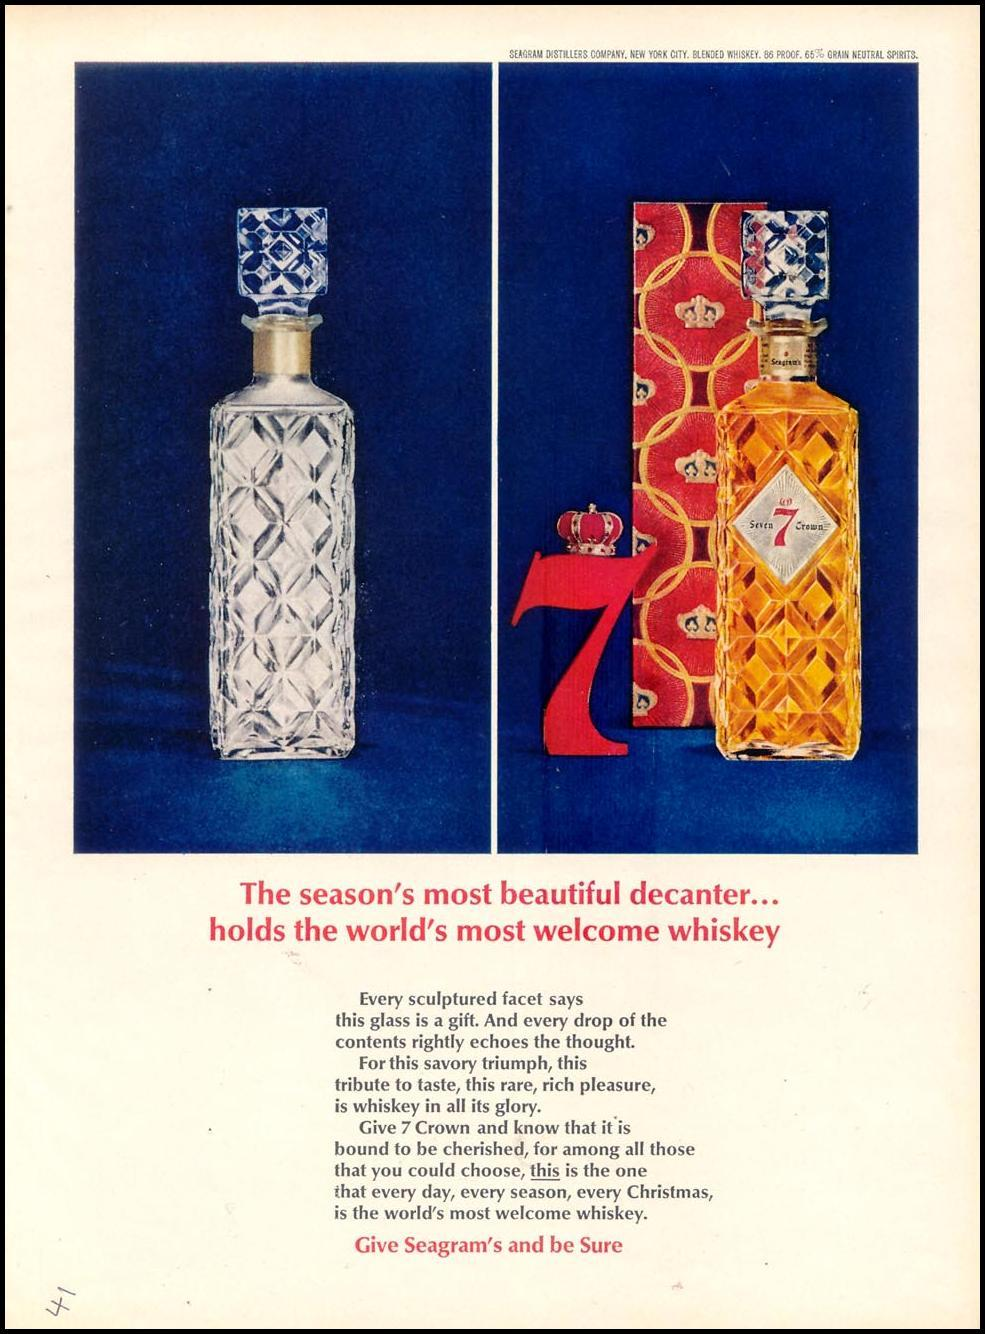 SEAGRAM'S SEVEN CROWN WHISKEY TIME 12/07/1962 p. 41